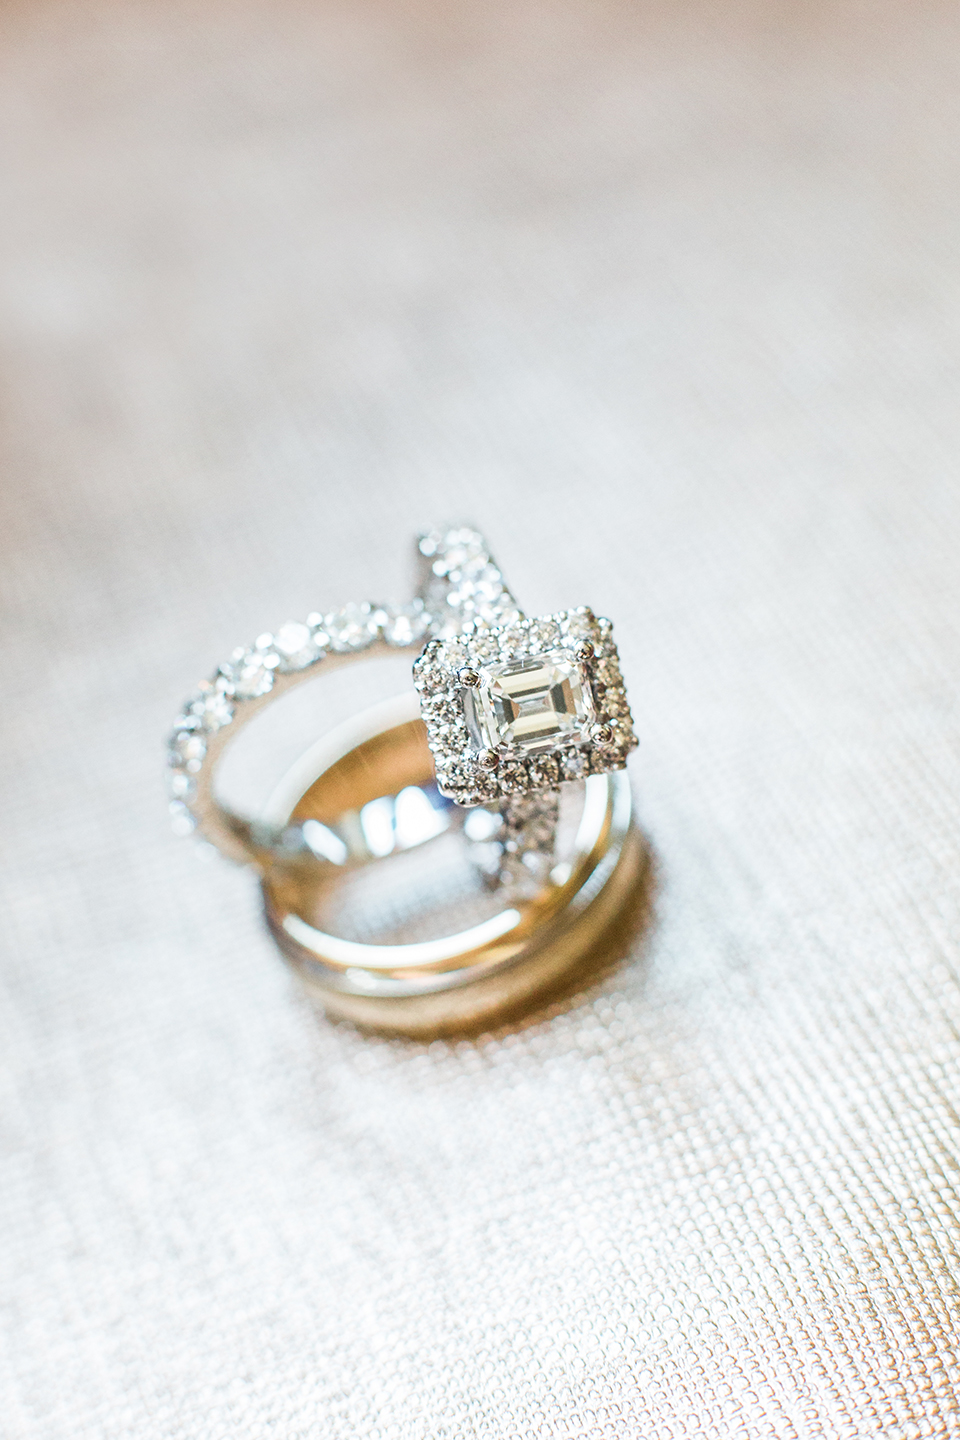 Engagement ring with wedding bands on a wedding day at The Vinoy in St. Pete, Florida | Debra Eby Photography Co.